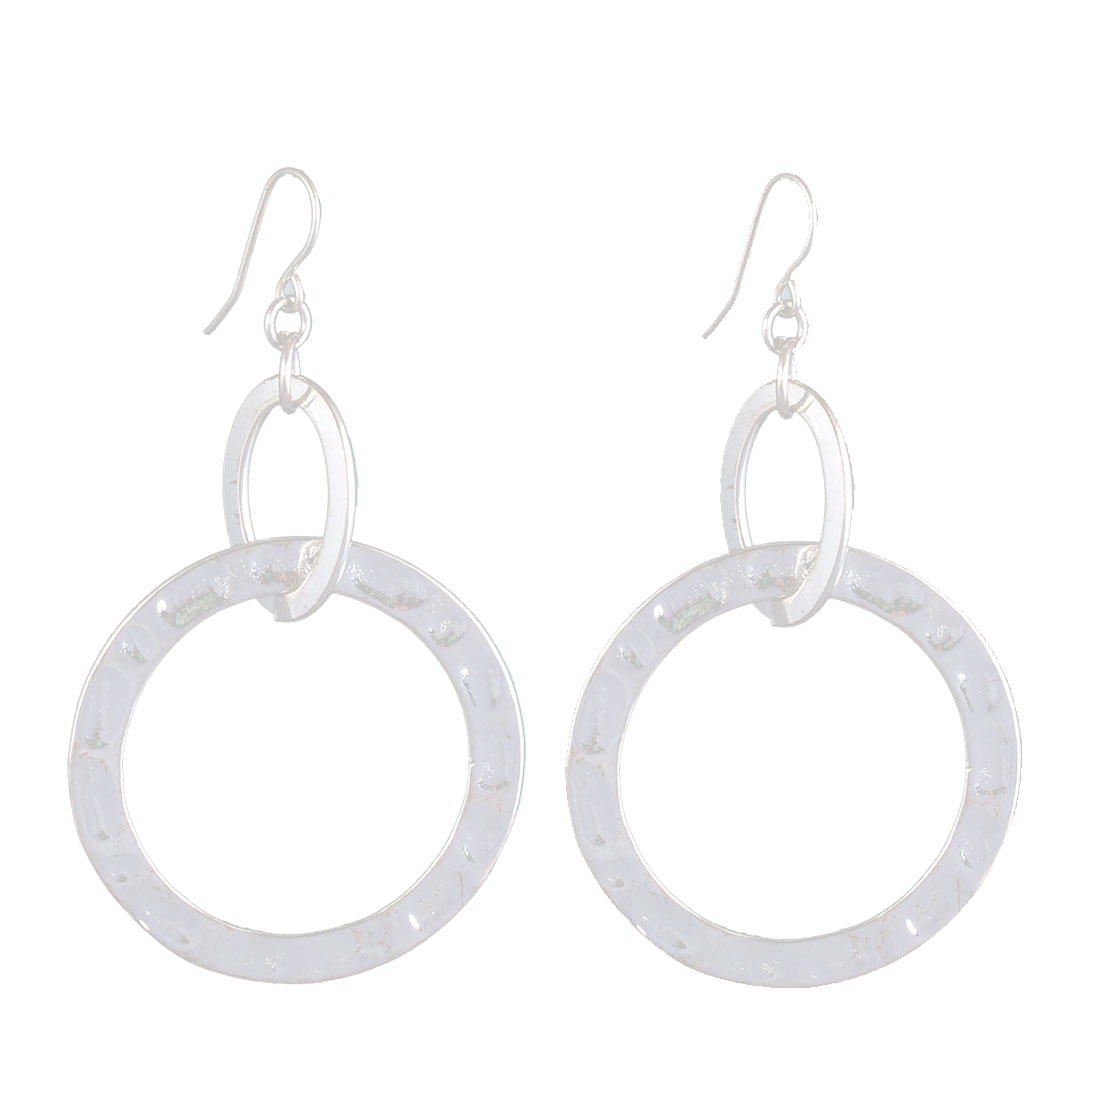 "2.8"" Length Silver Tone Metal Interlink Hollow Out Circle Dangling Pendant Hook Earrings Earbobs Pair for Lady Women"